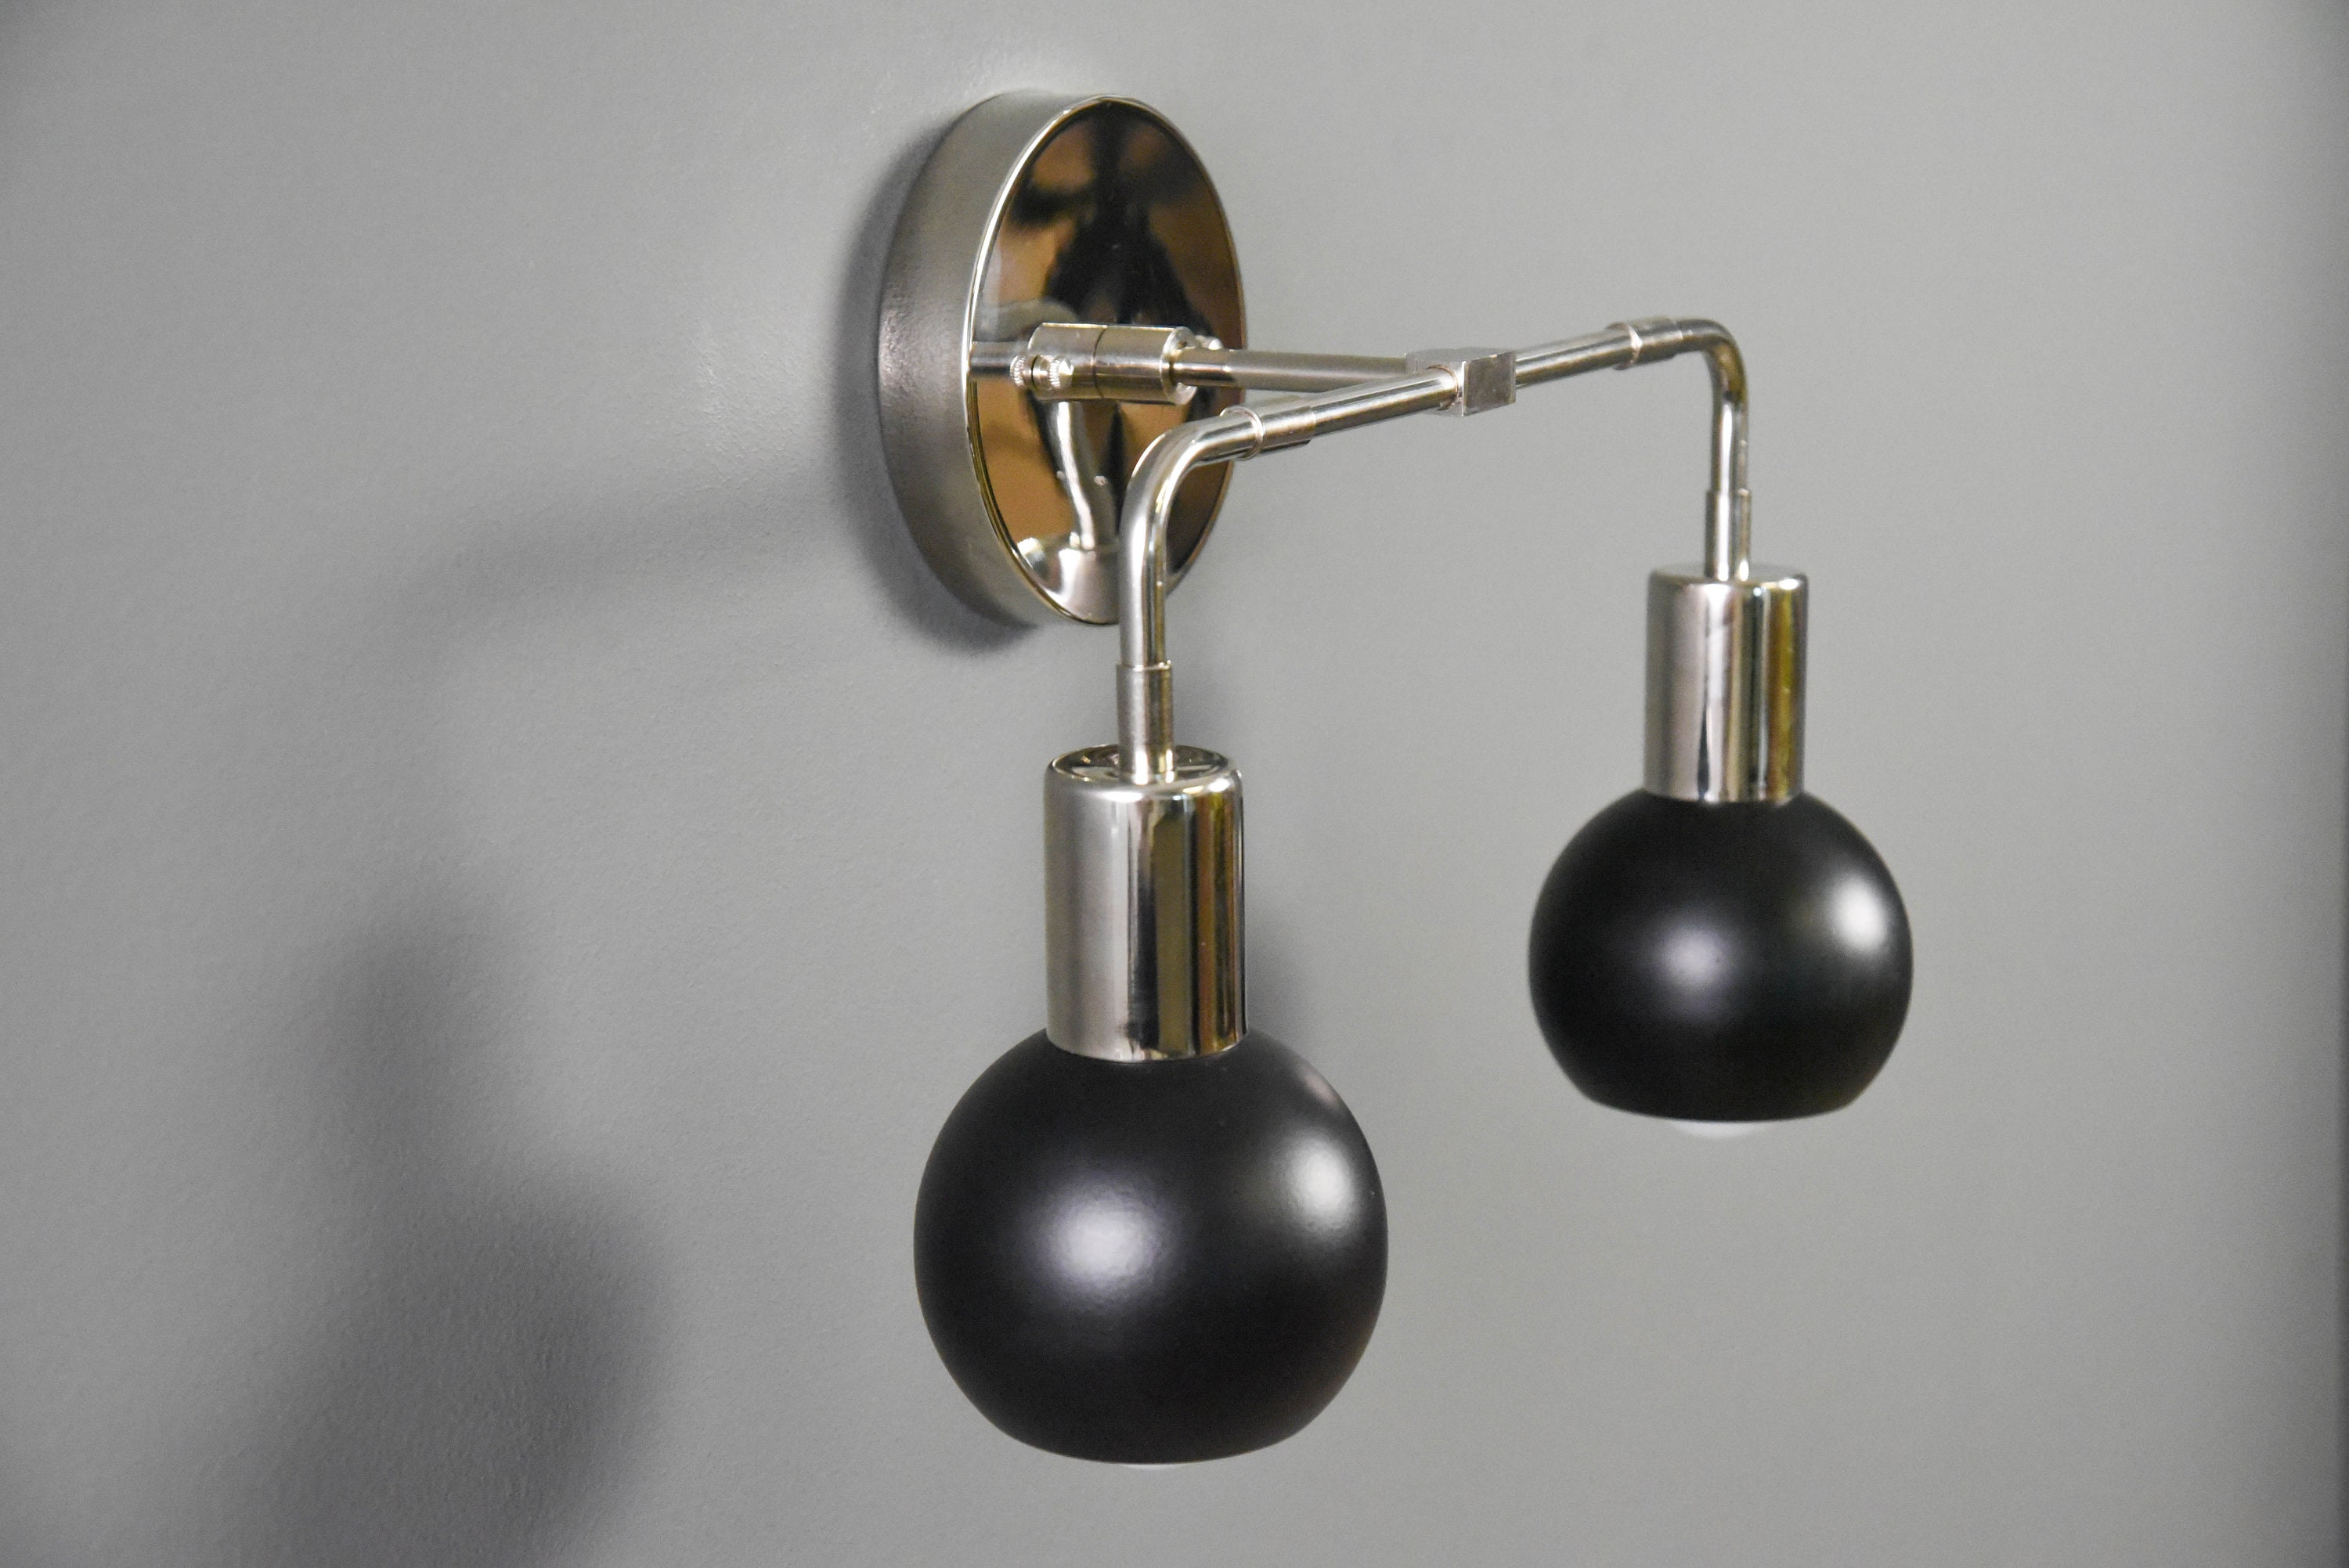 industrial gold and lamp sconce sensational bathroom modern wall fixtures etsy light bare